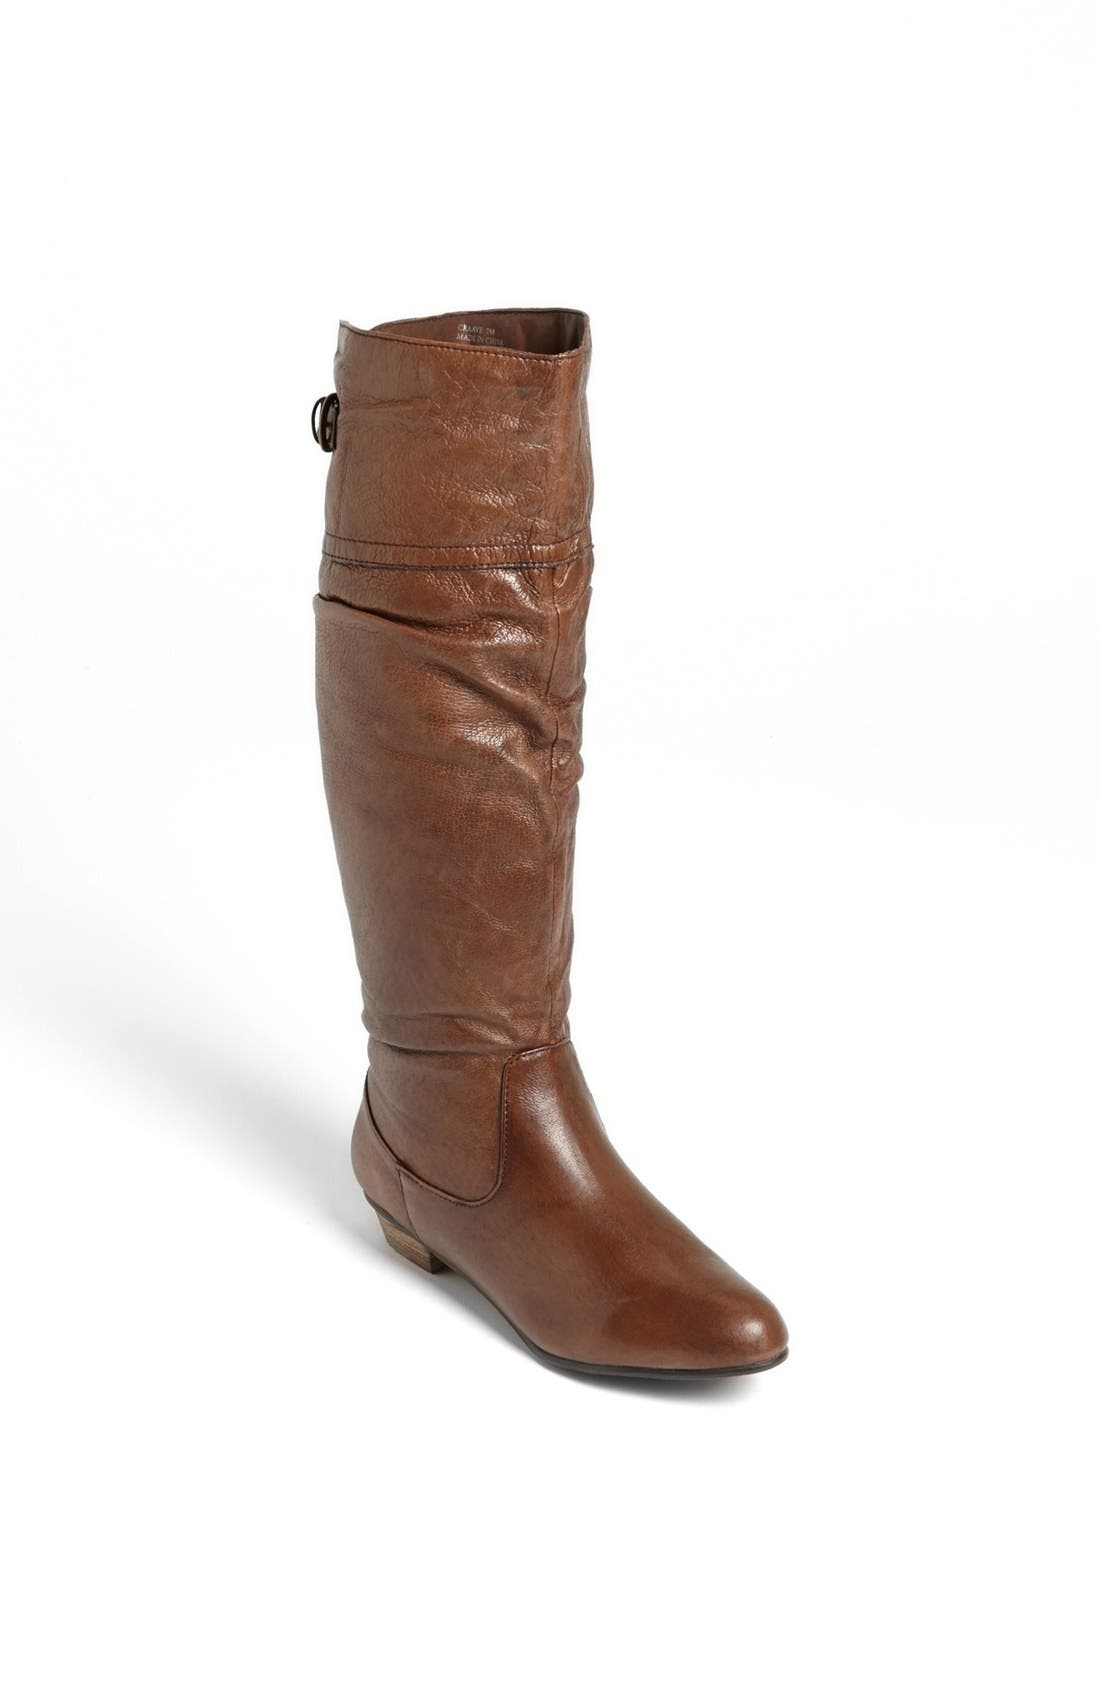 Alternate Image 1 Selected - Steve Madden 'Craave' Boot